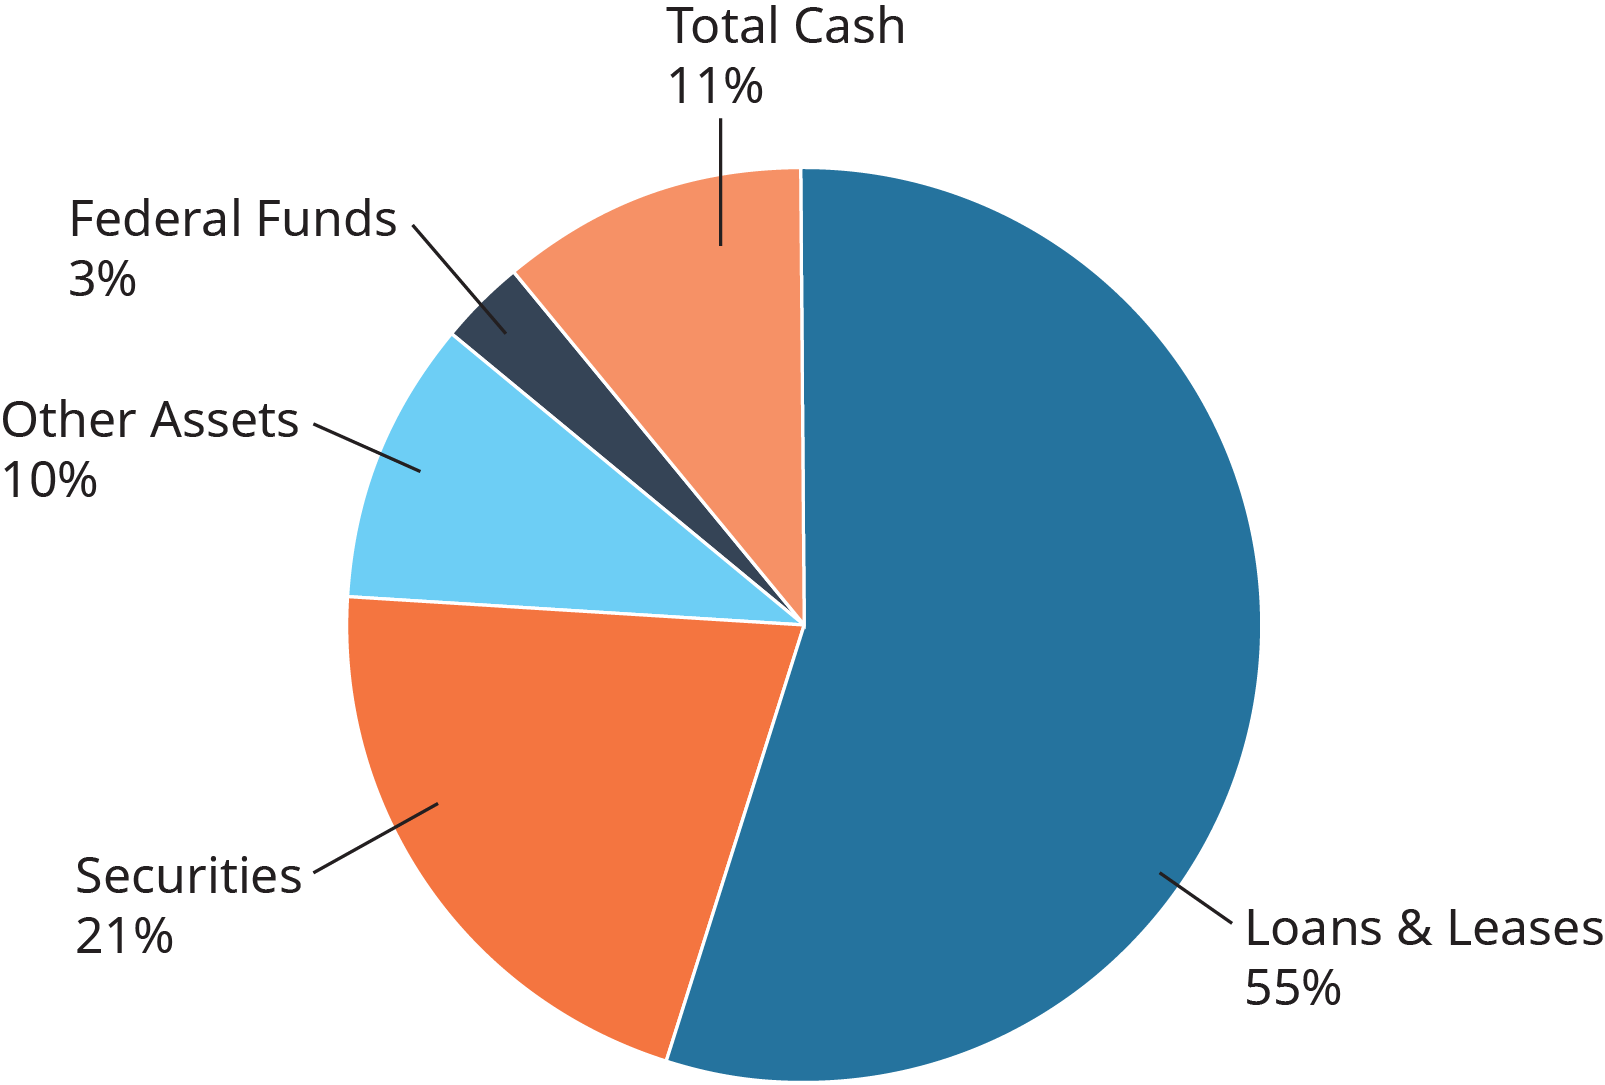 A pie chart is shown. The sections and percentages are as follows. Total cash, 11 percent. Federal funds, 3 percent. Other assets, 10 percent. Securities, 21 percent. Loans and leases, 55 percent.